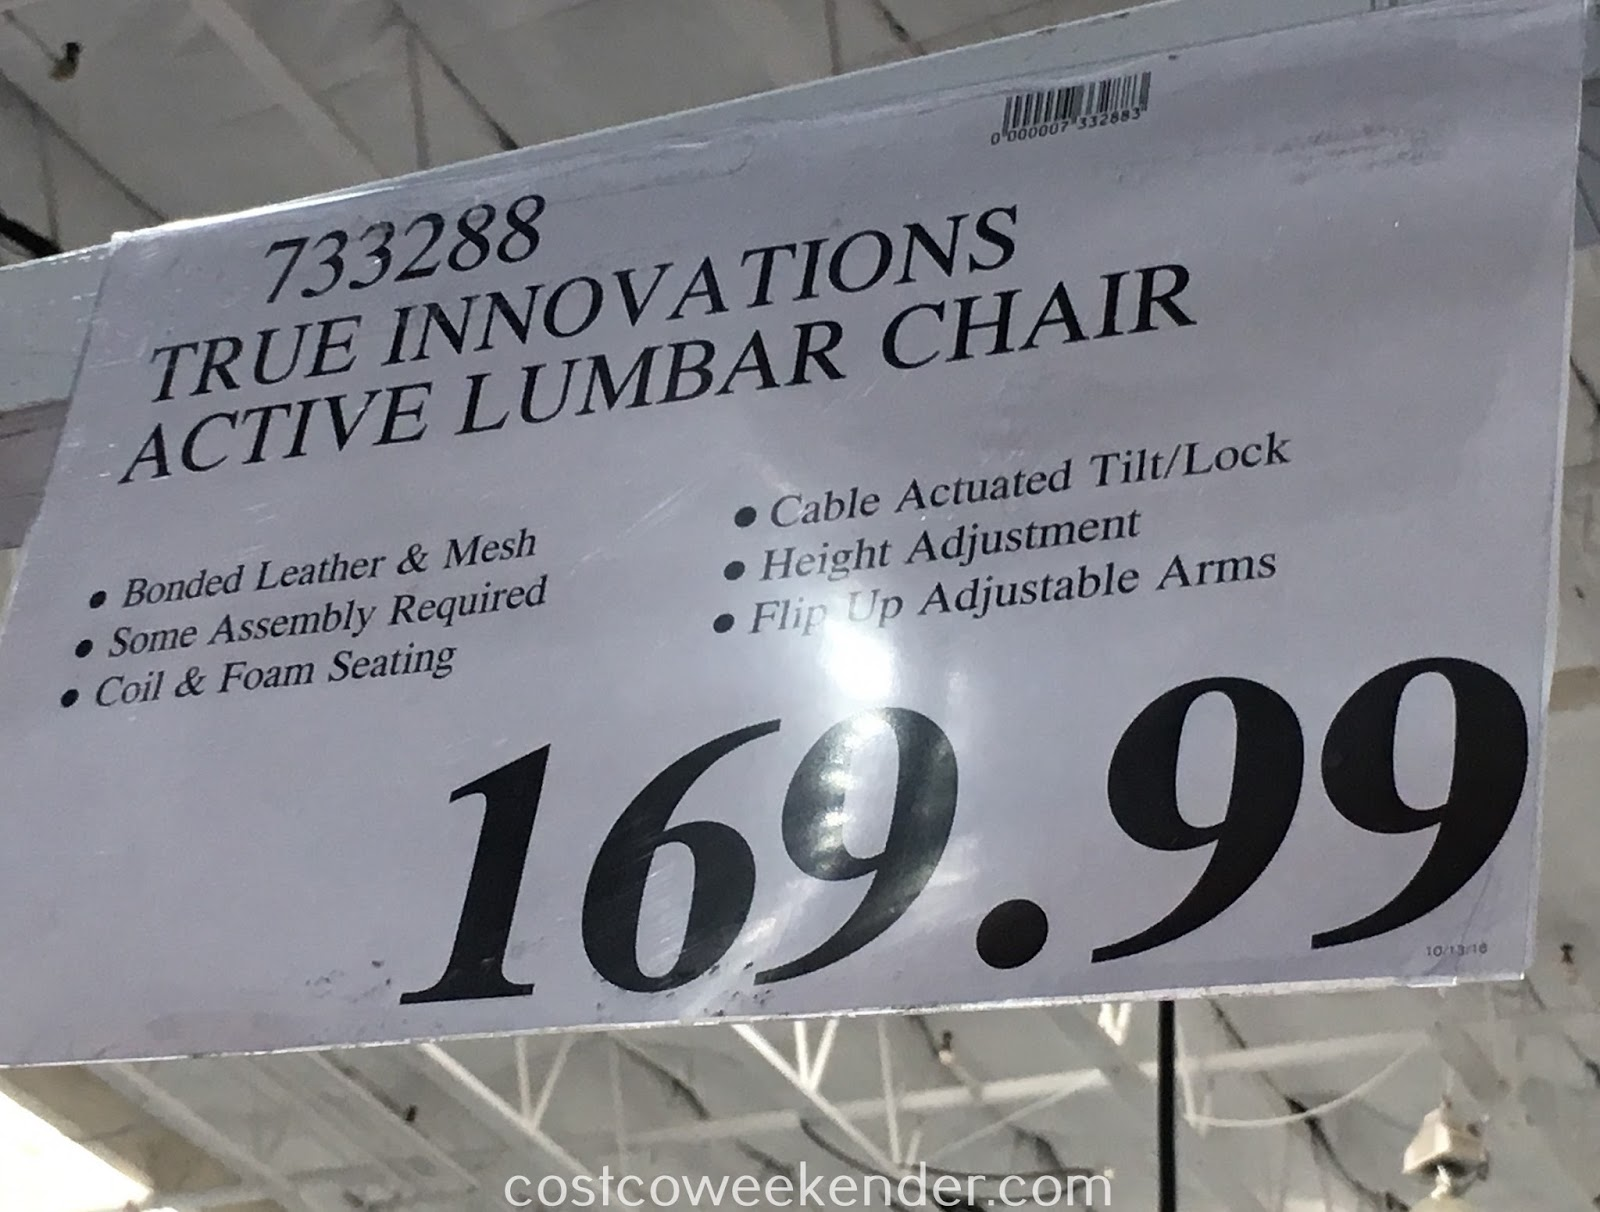 Deal for the True Innovations True Wellness Active Lumbar Chair at Costco